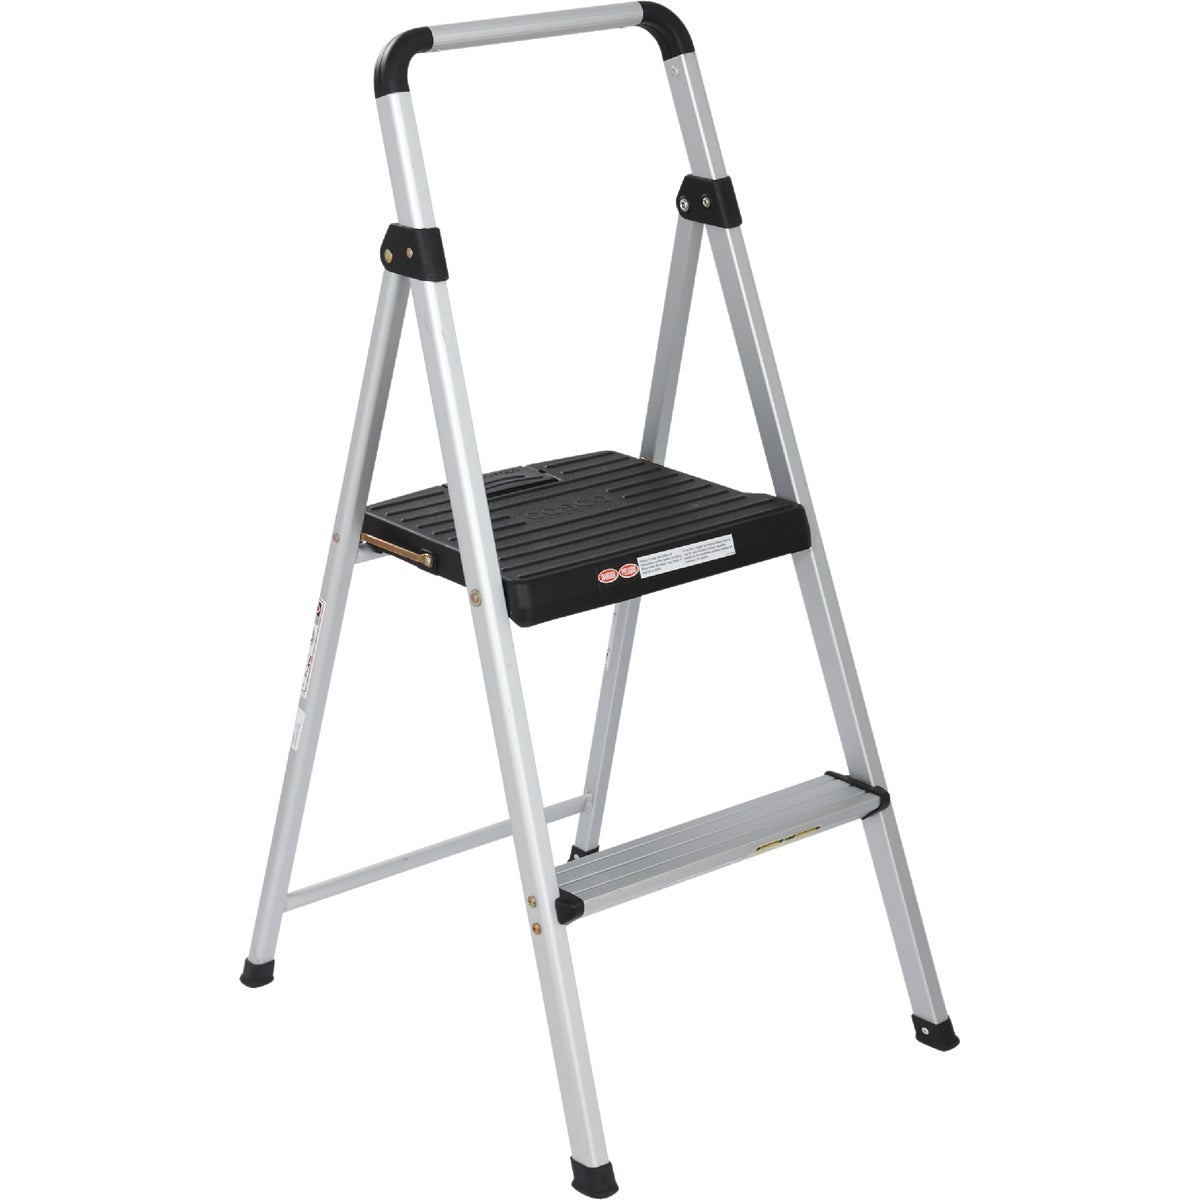 Cosco Home & Office LIGHTWEIGHT STEP STOOL 11-628-ABK4